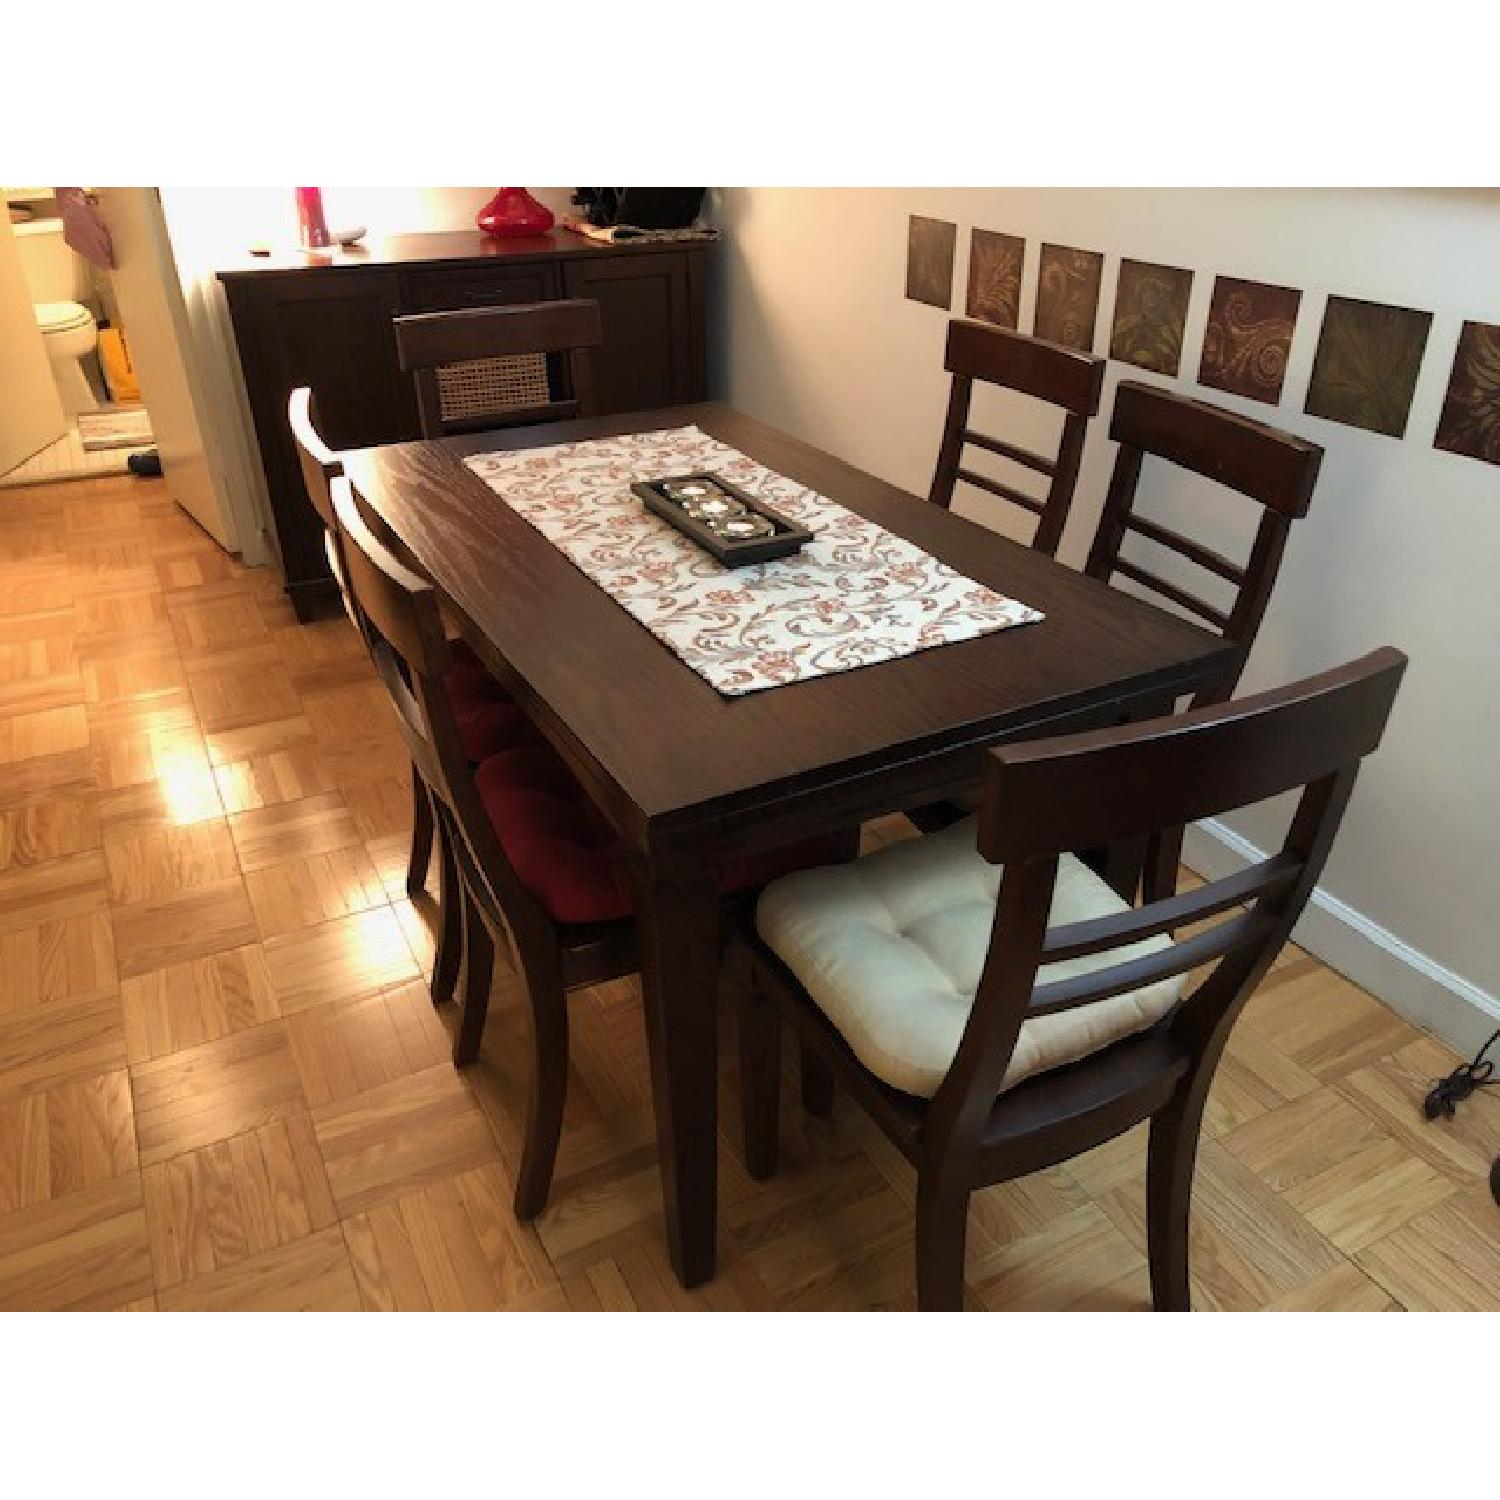 Crate & Barrel Table w/ 6 Chairs-3